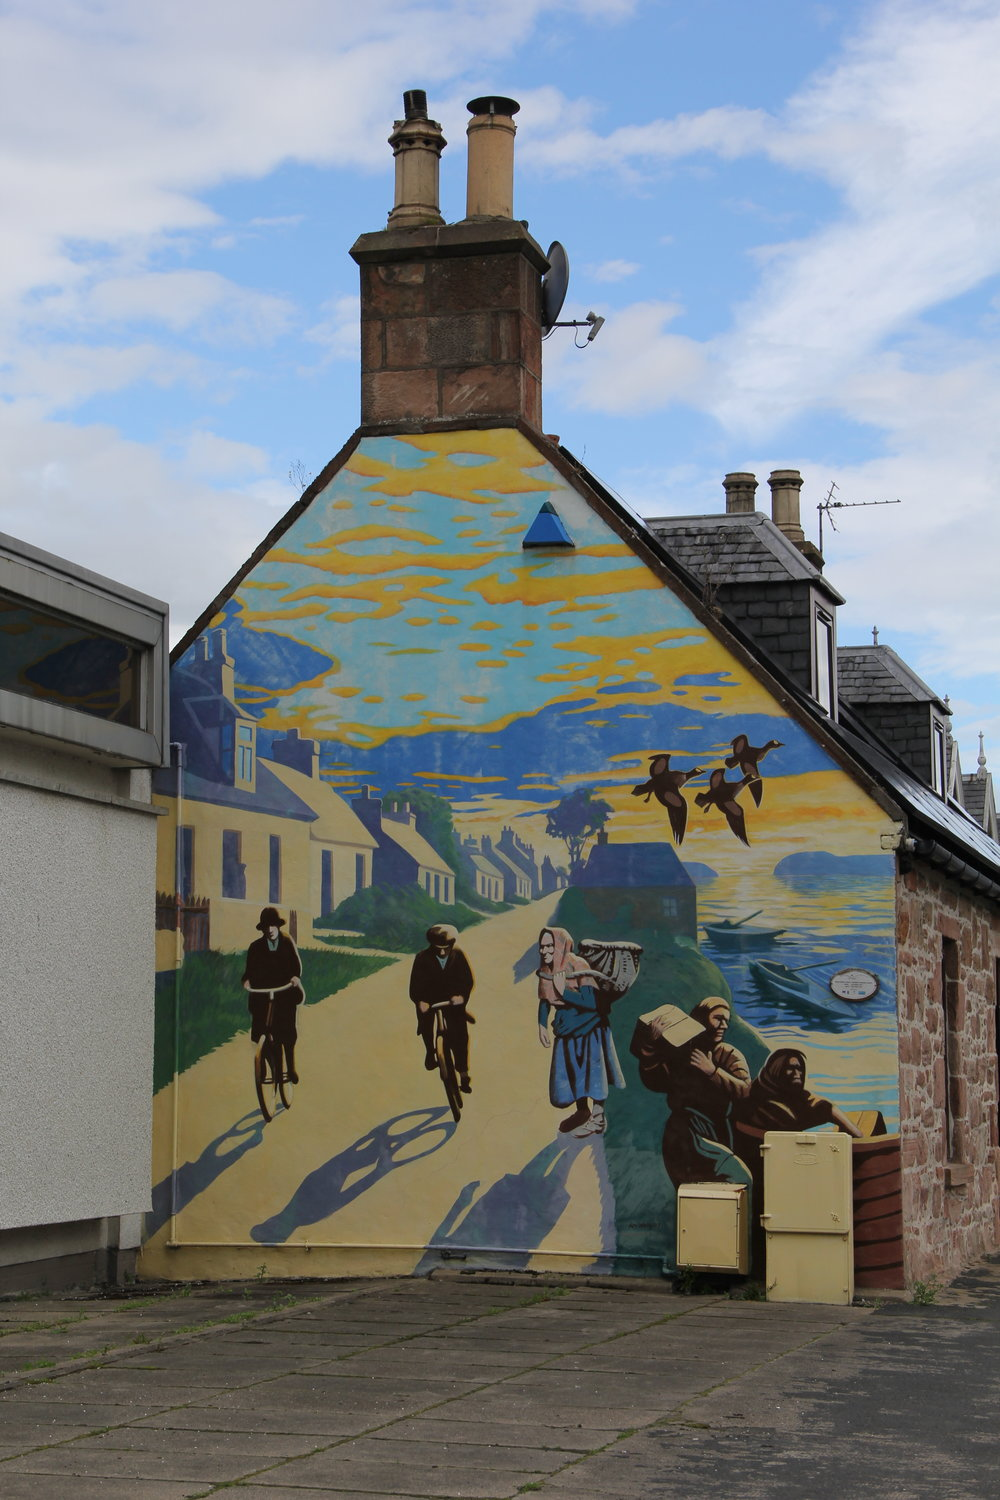 Scenes of the past from Saltburns—a sister town very near Invergordon